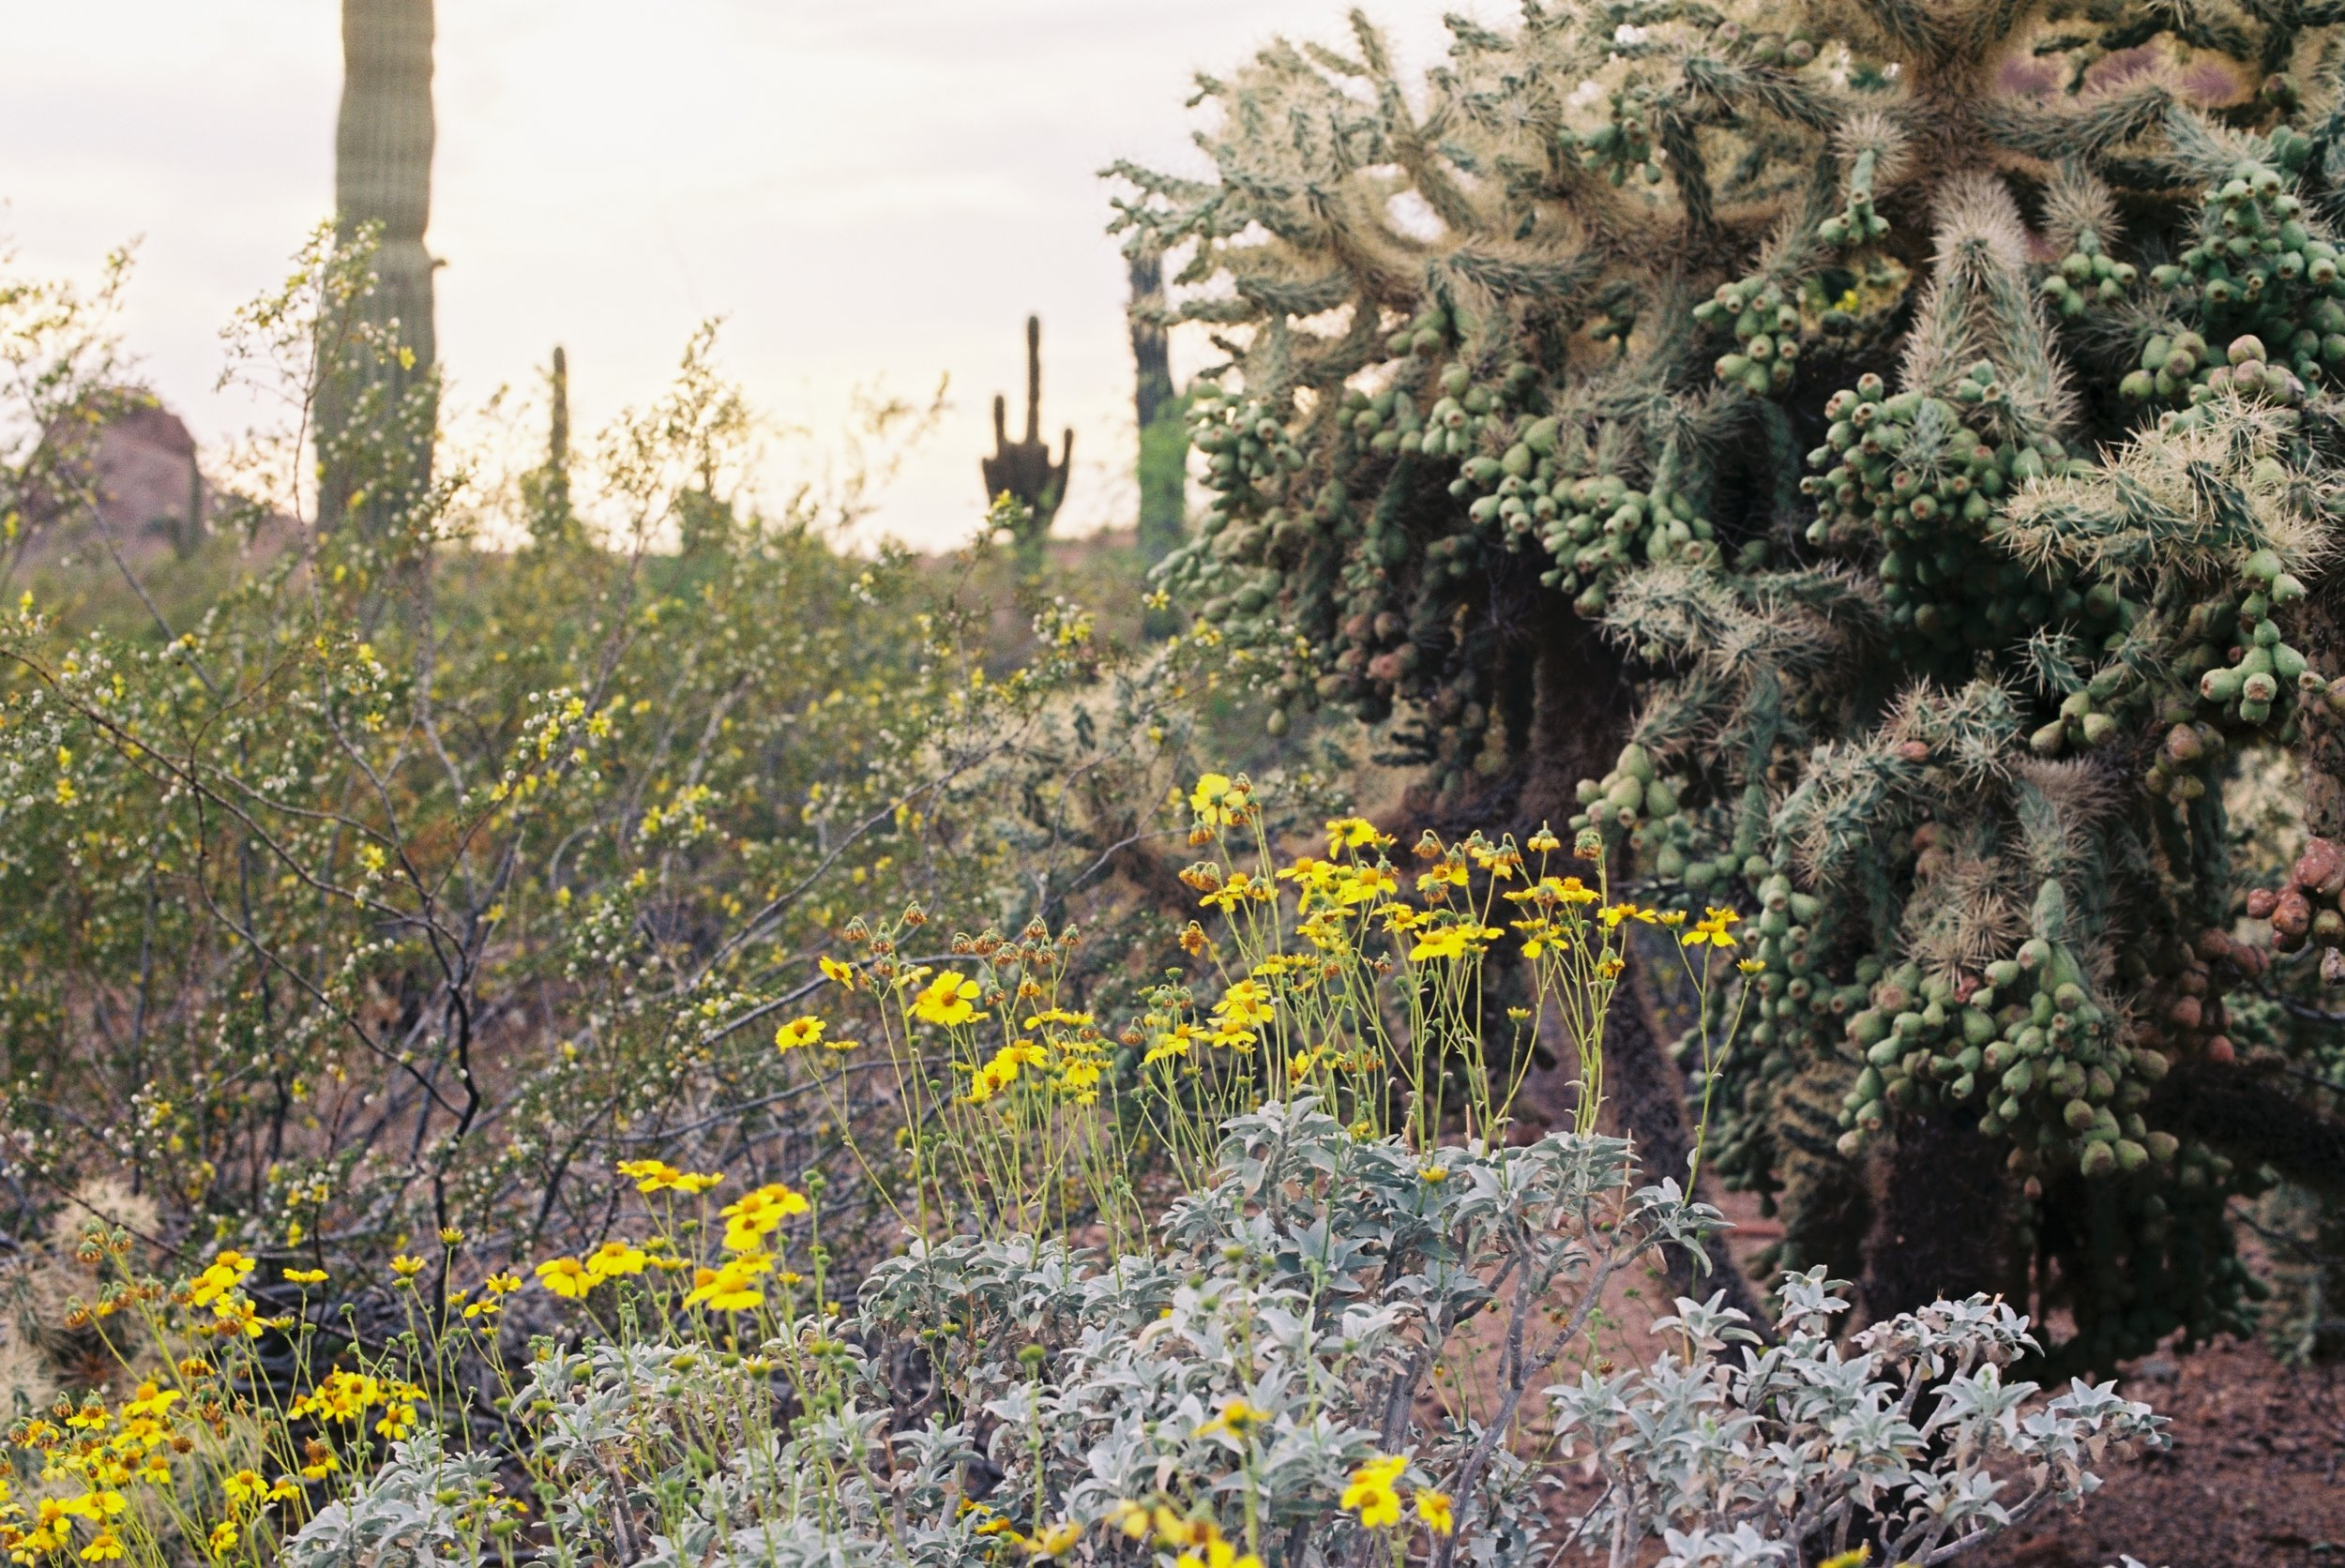 Heavy, fruit-bearing cactus on the right, paired with brittlebush (the yellow flowers)